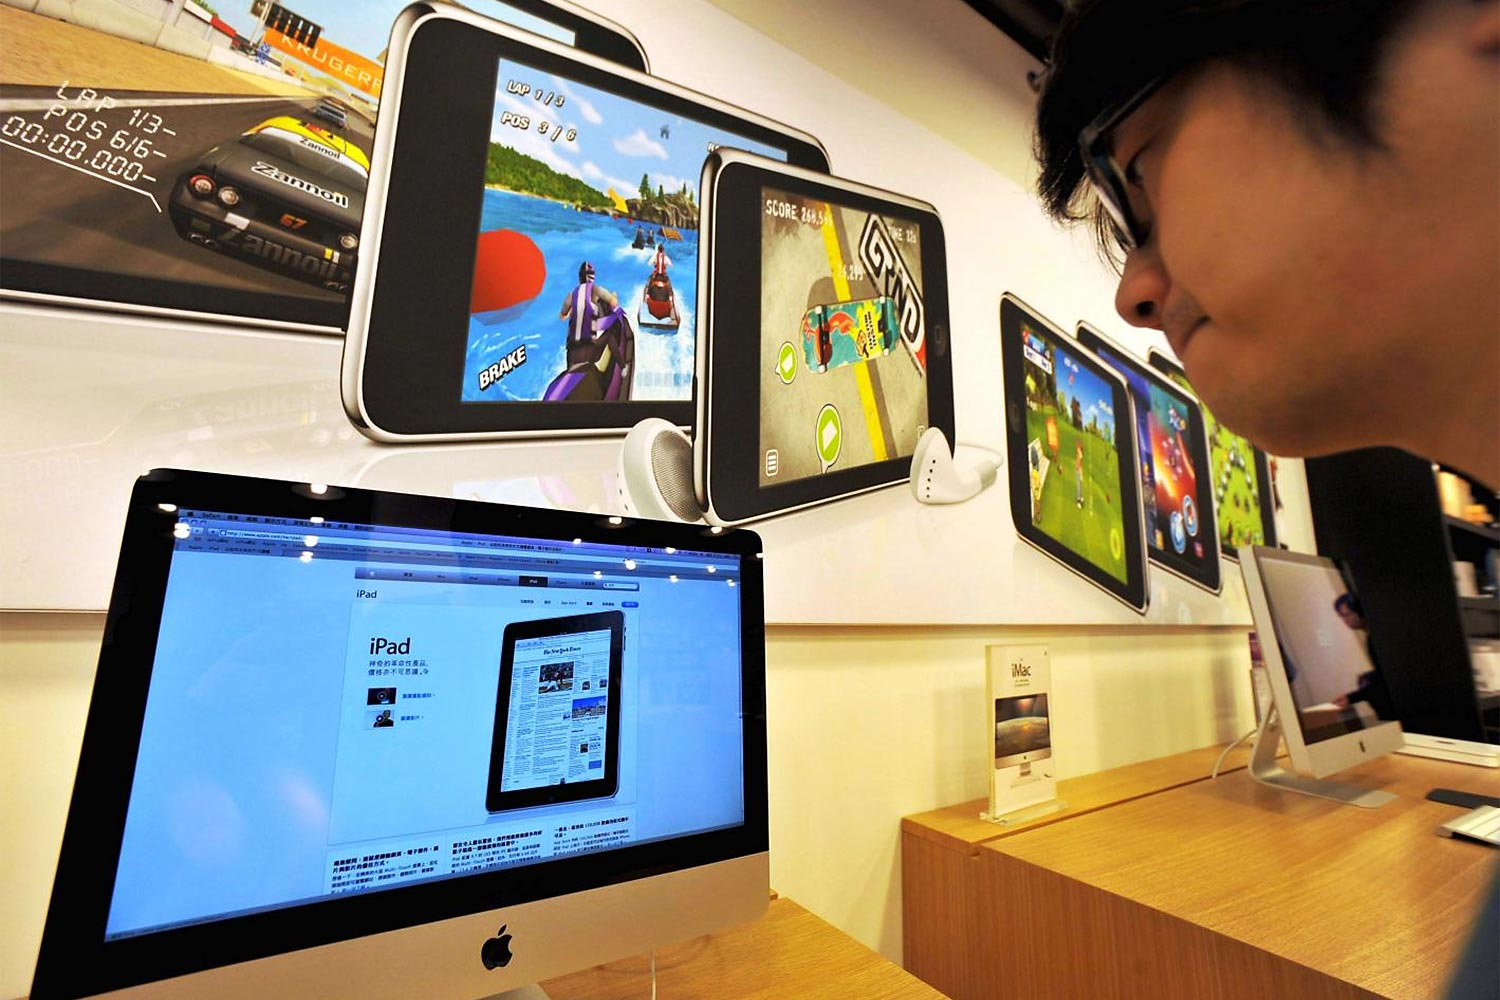 A man looks at monitors displaying the Apple iPad website at a computer store in Taipei. Consumers have become accustomed to divulging their data in exchange for the conveniences offered by technology.(Photo: AFP)